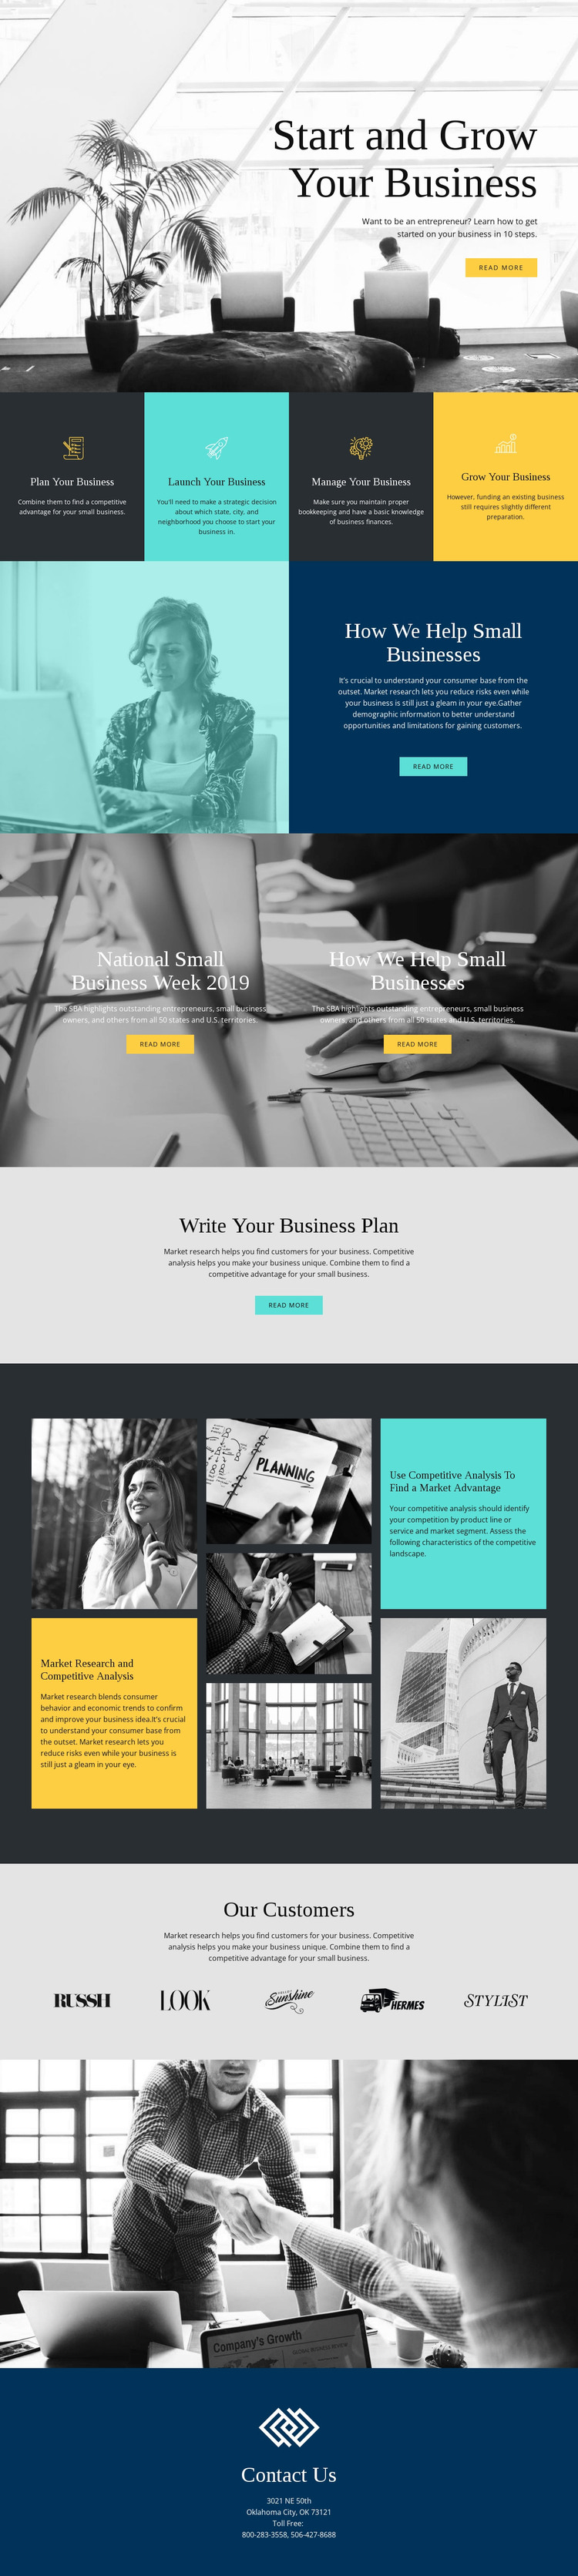 Start and grow your business WordPress Theme